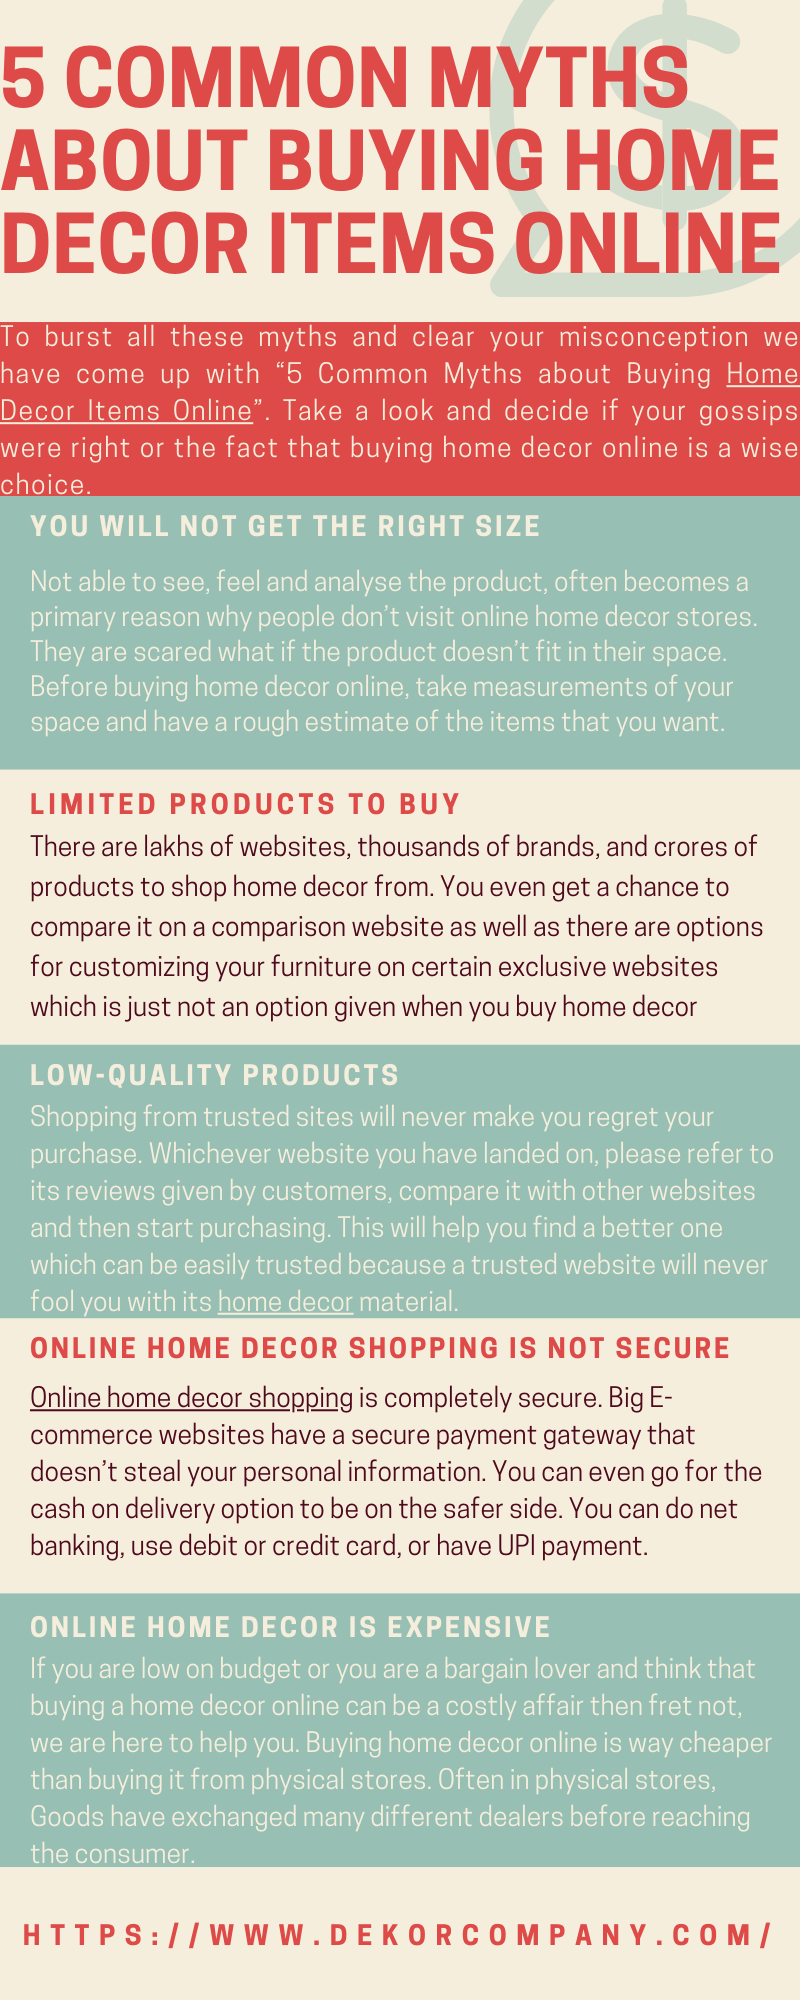 5 Common Myths about Buying Home Decor Items Online